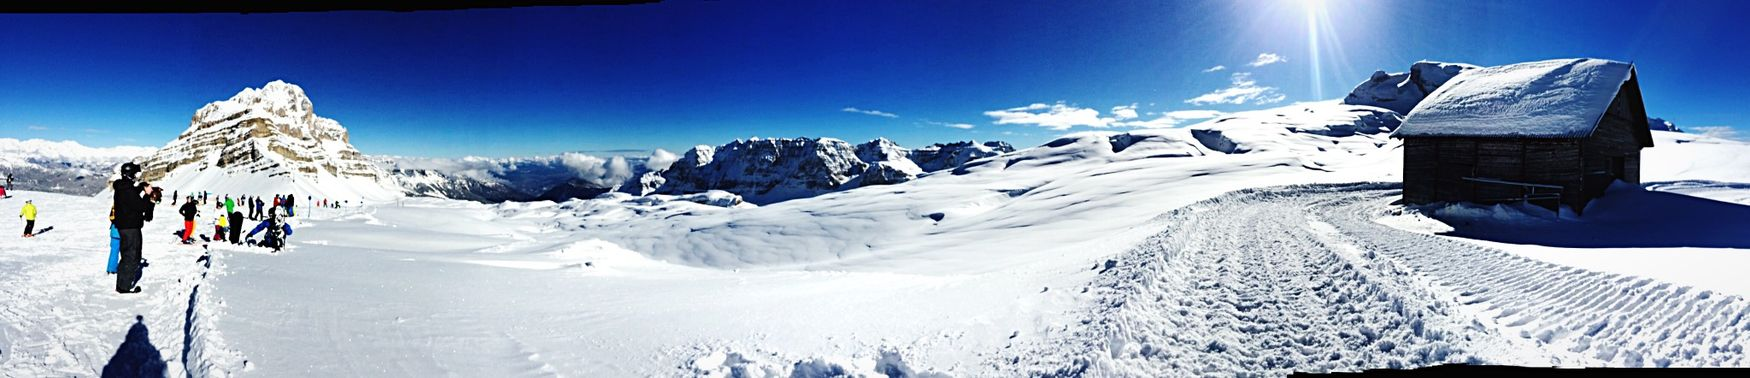 The Places I've Been Today Mountain View Snow ❄